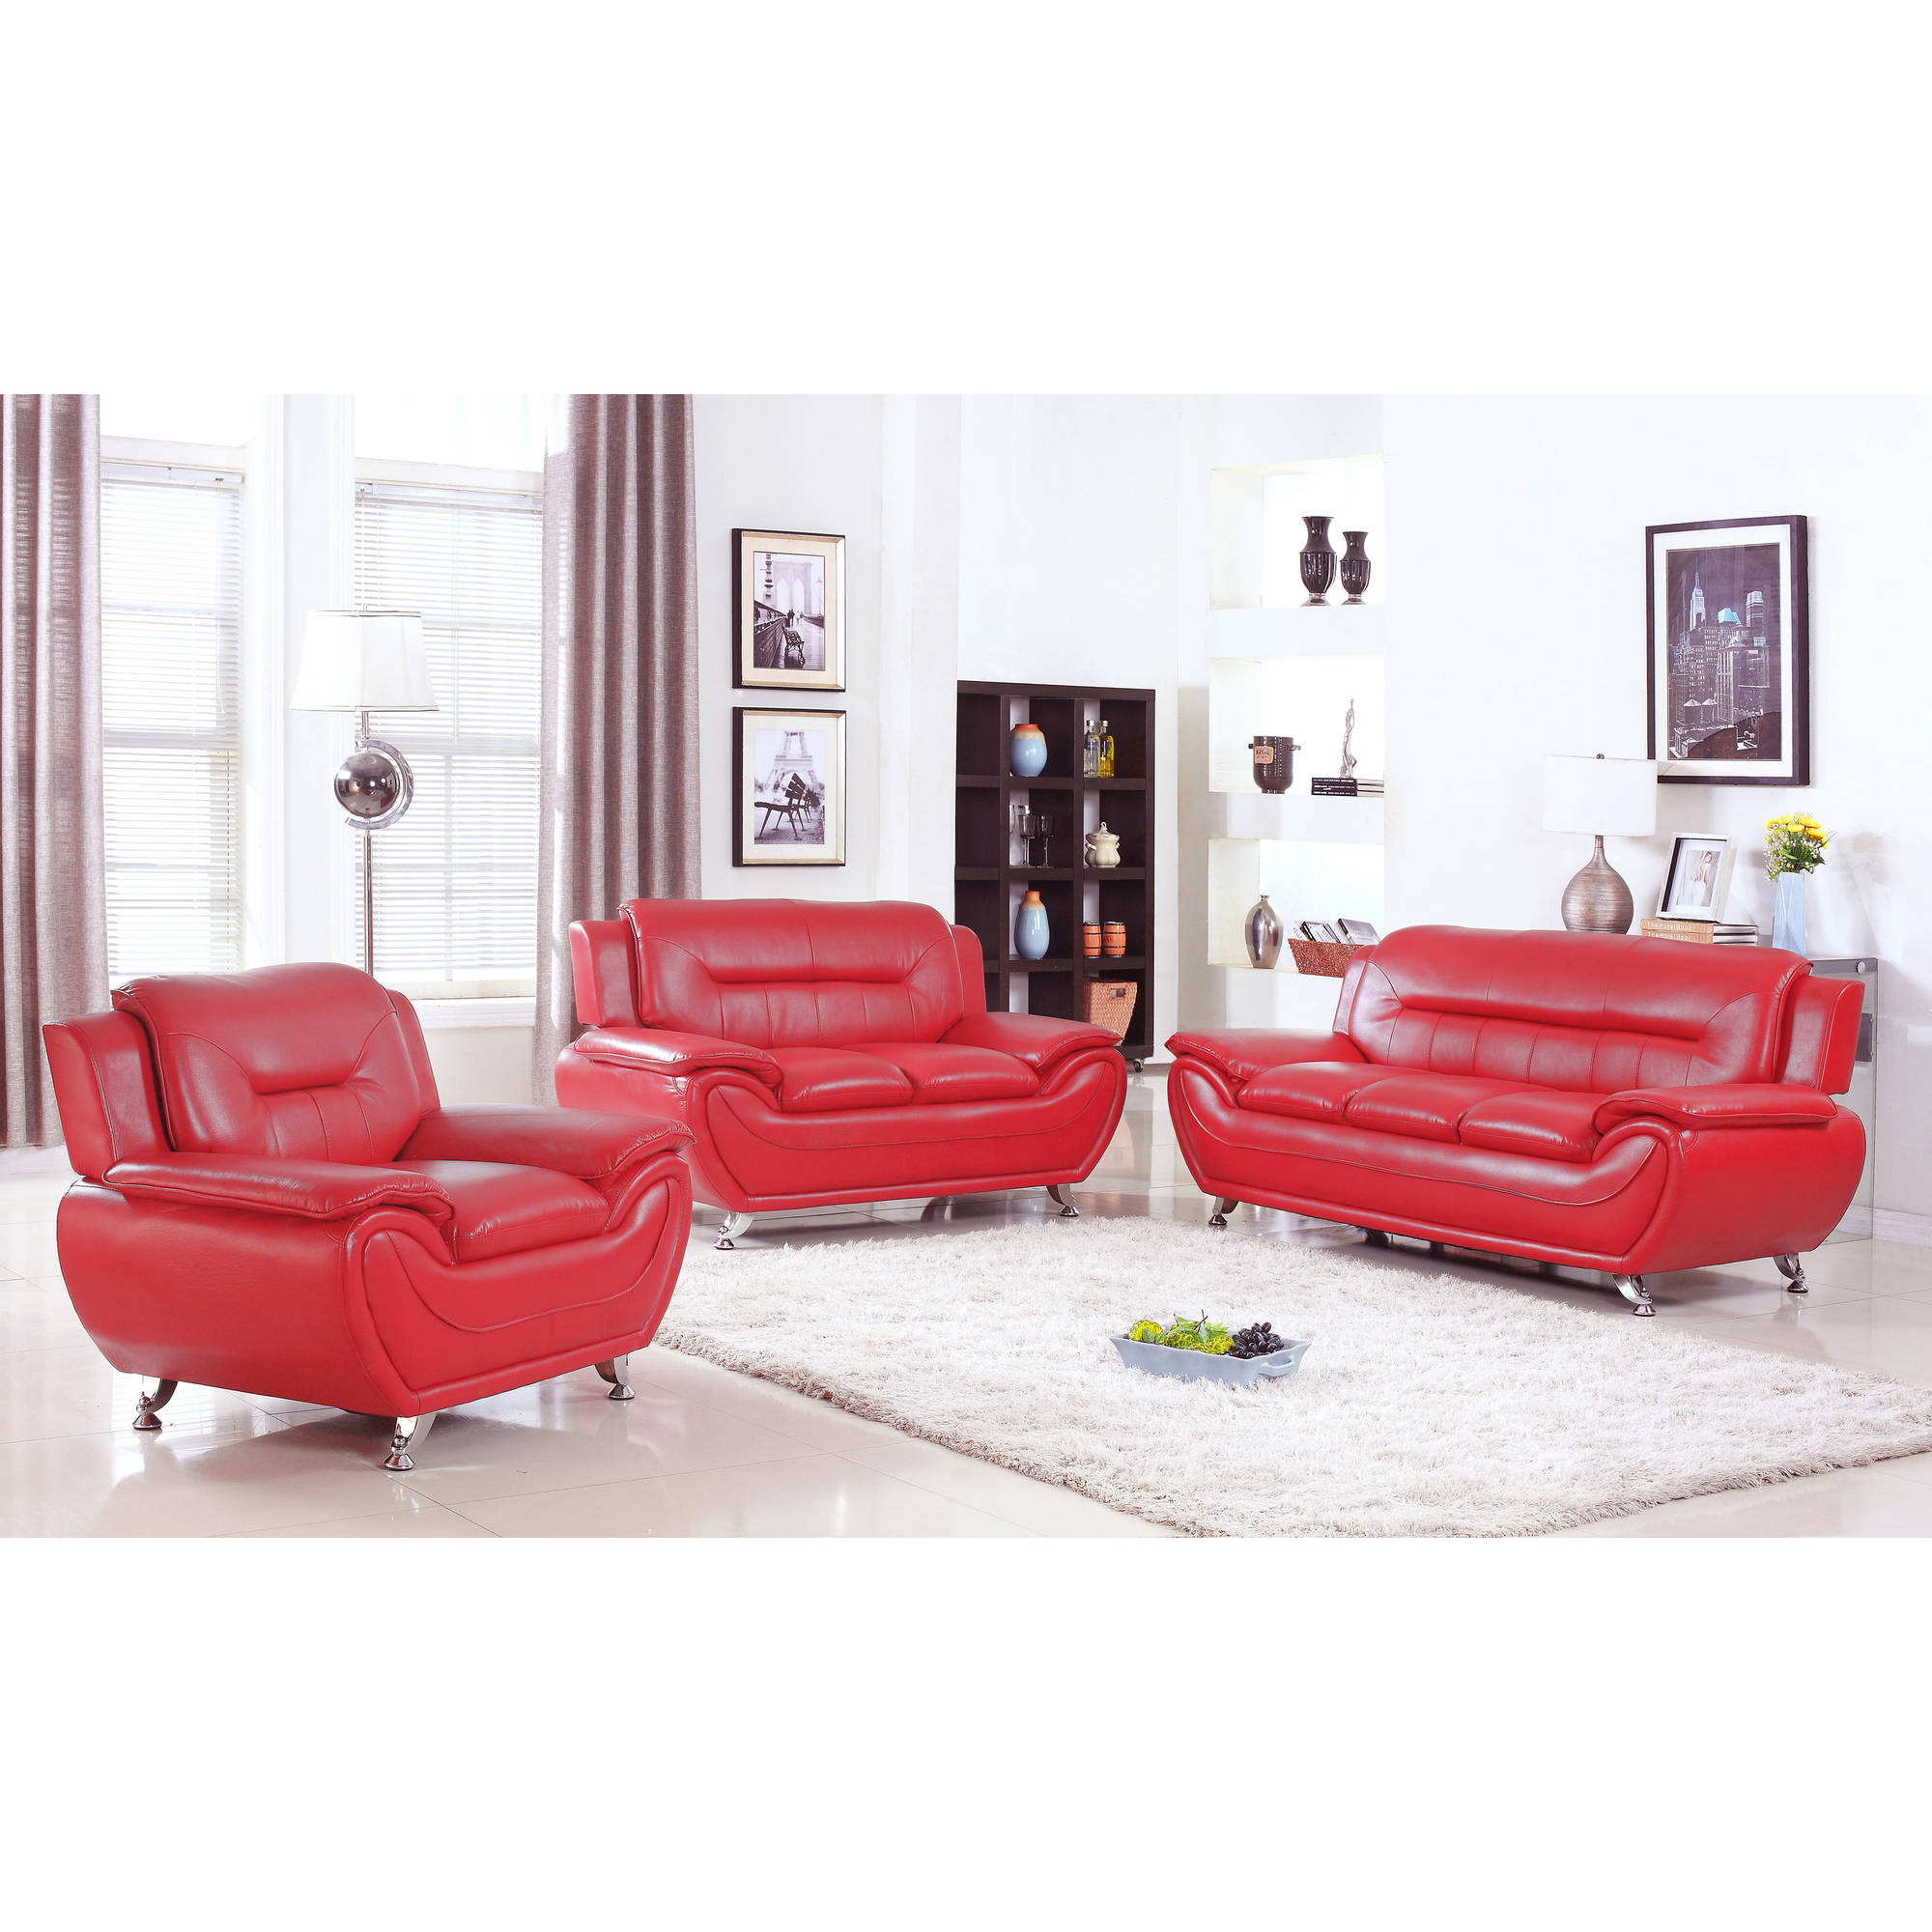 UFE Norton Red Faux Leather 3-Piece Modern Living Room Sofa Set